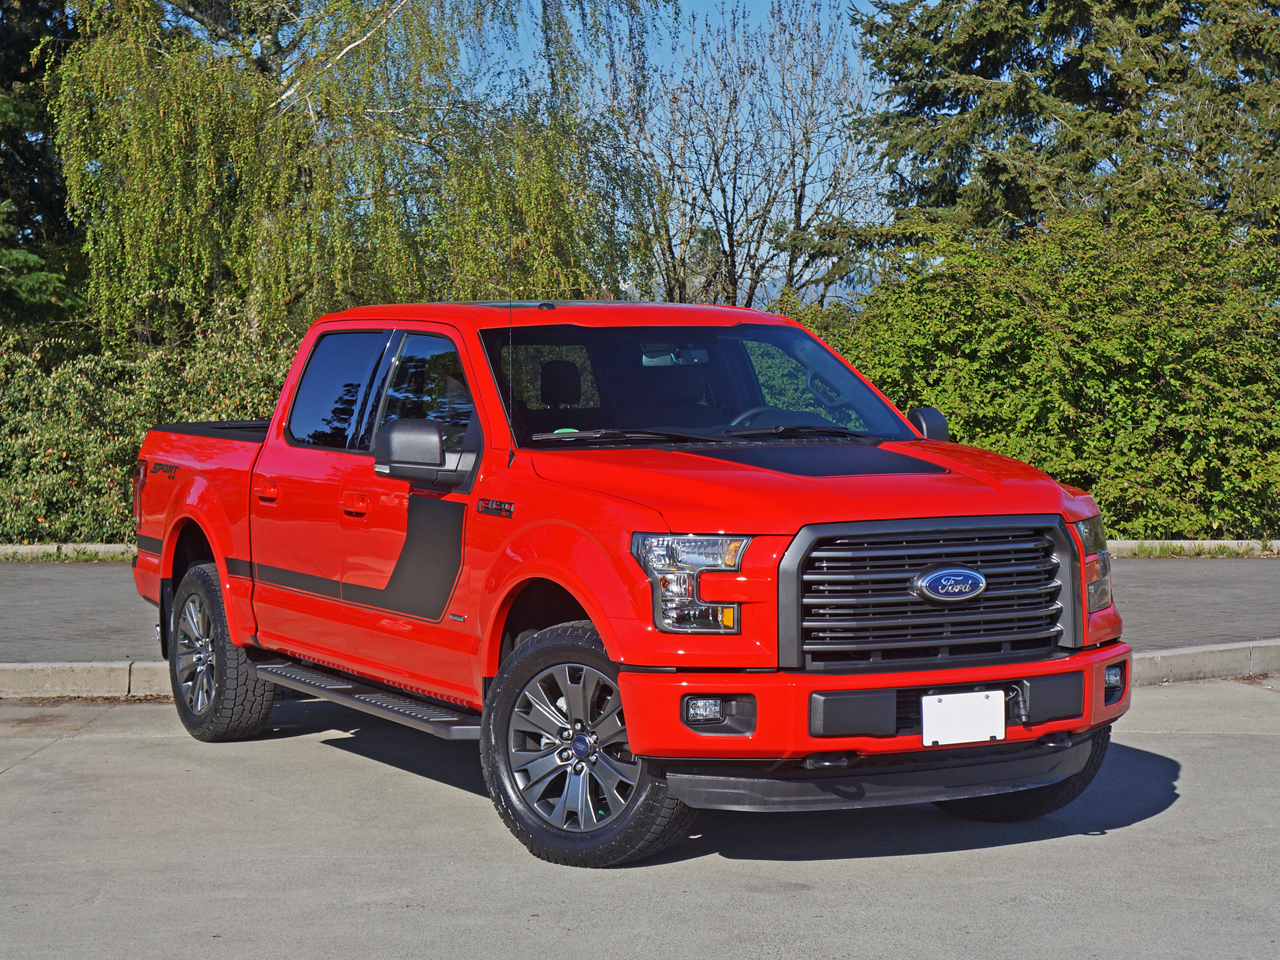 2016 ford f 150 xlt special edition sport supercrew v6 ecoboost 4x4 road test review carcostcanada. Black Bedroom Furniture Sets. Home Design Ideas